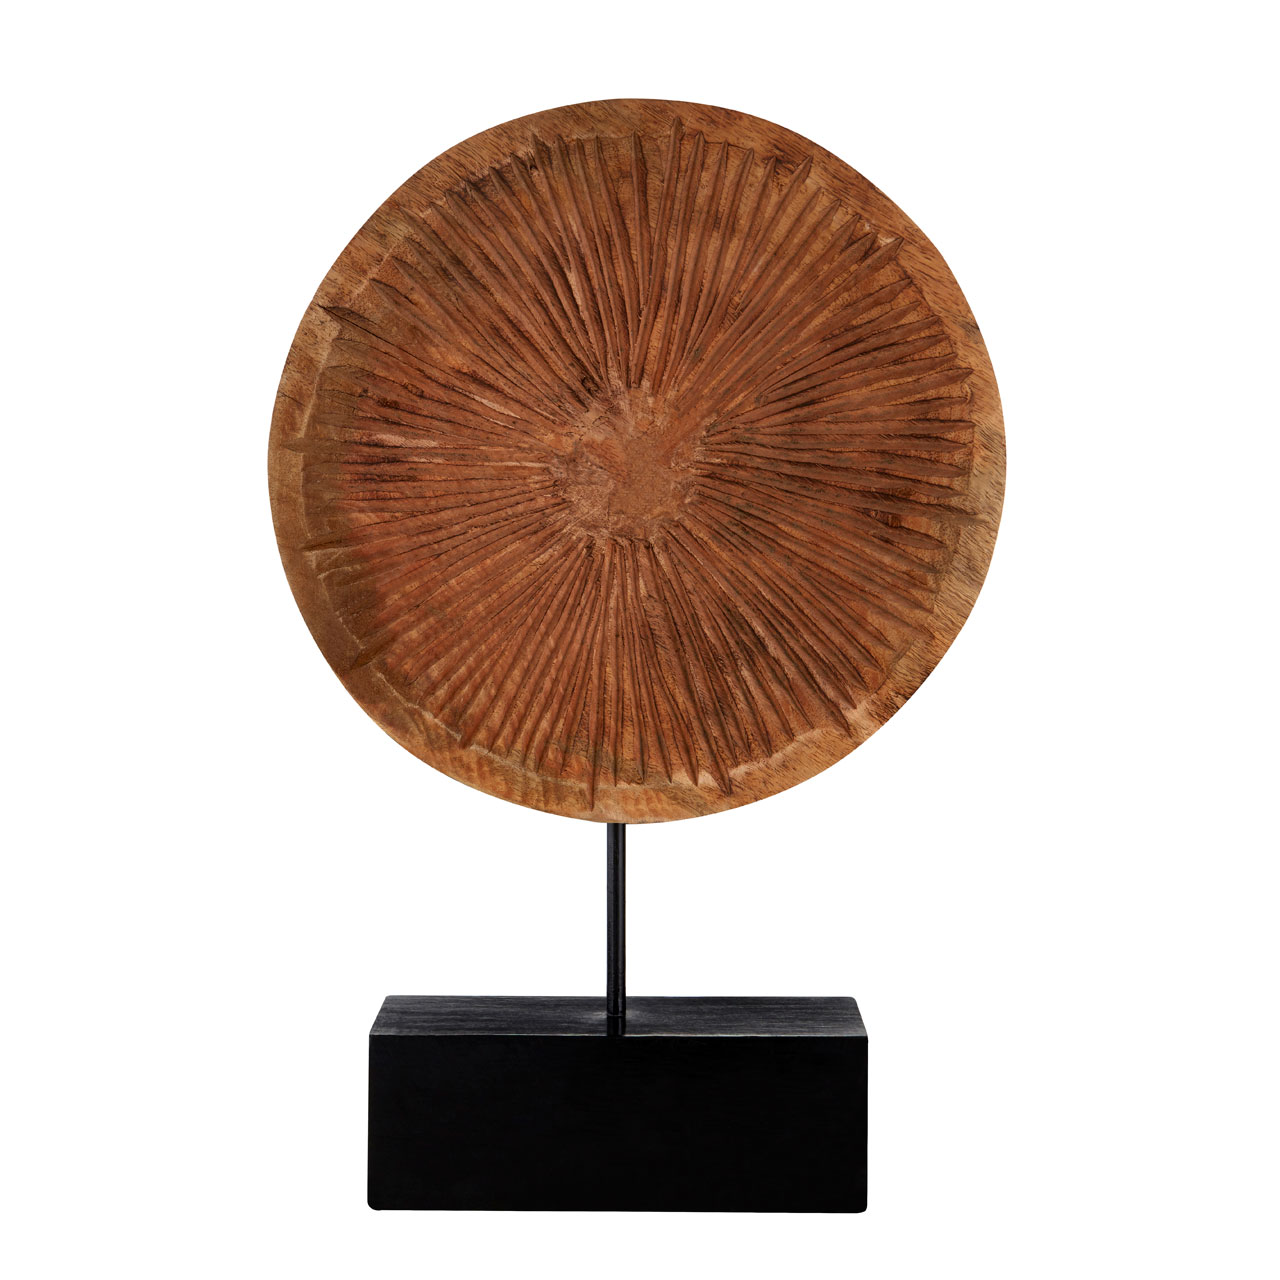 Prime Furnishing Complements Large Disc On Stand Carved Wood